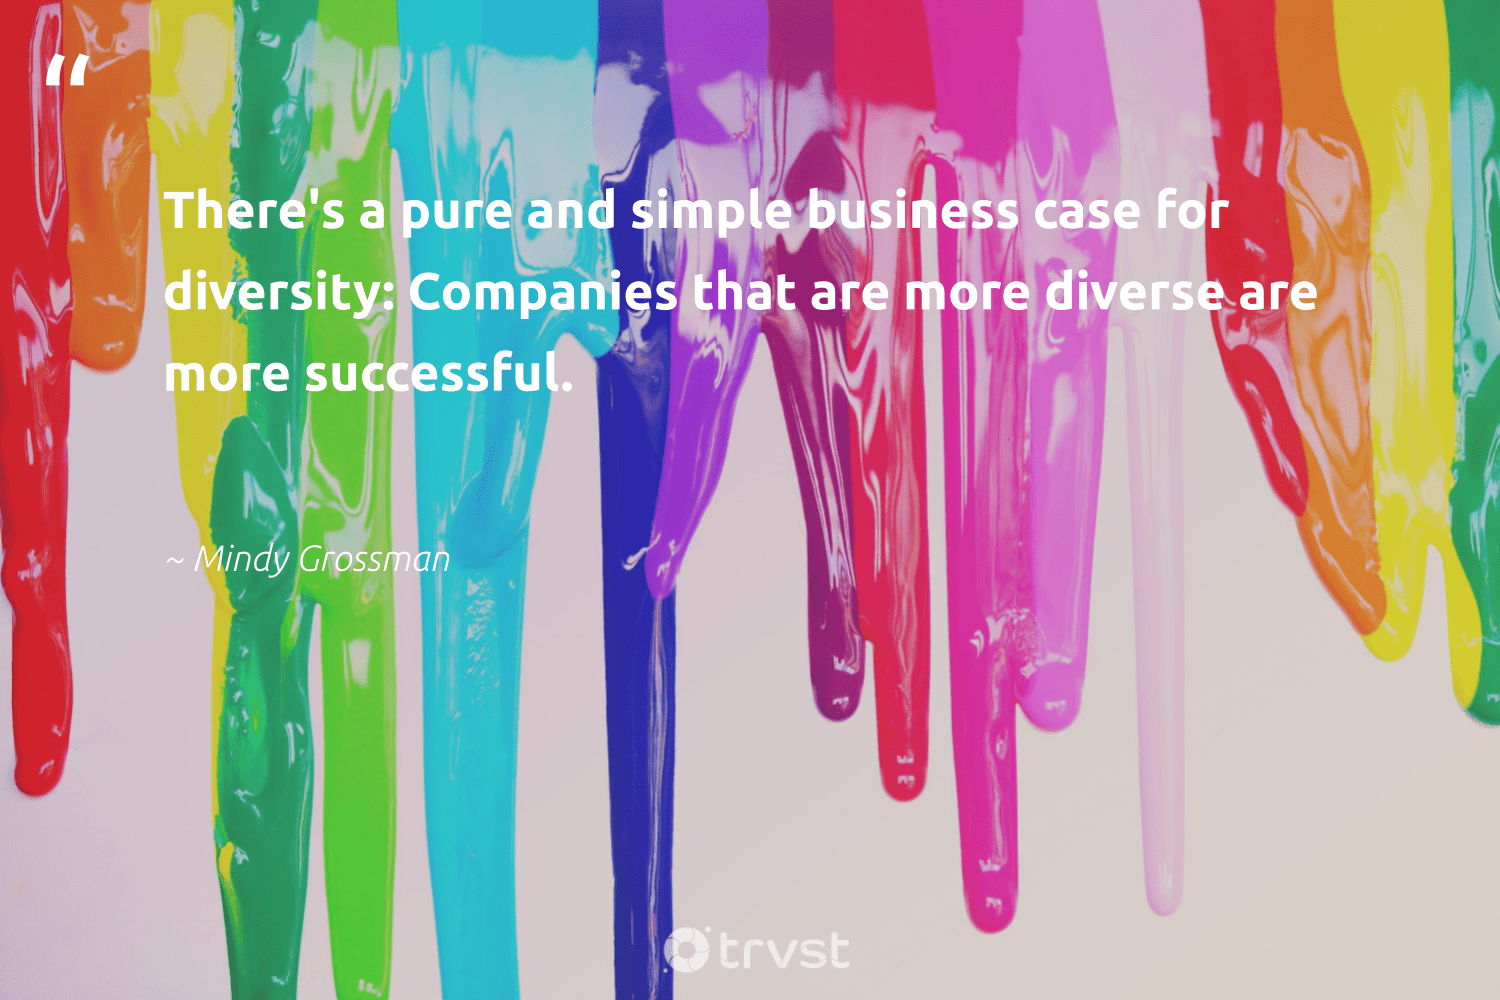 """There's a pure and simple business case for diversity: Companies that are more diverse are more successful.""  - Mindy Grossman #trvst #quotes #socialgood #dosomething #weareallone #thinkgreen #bethechange #impact #socialchange #dogood #makeadifference #changetheworld"